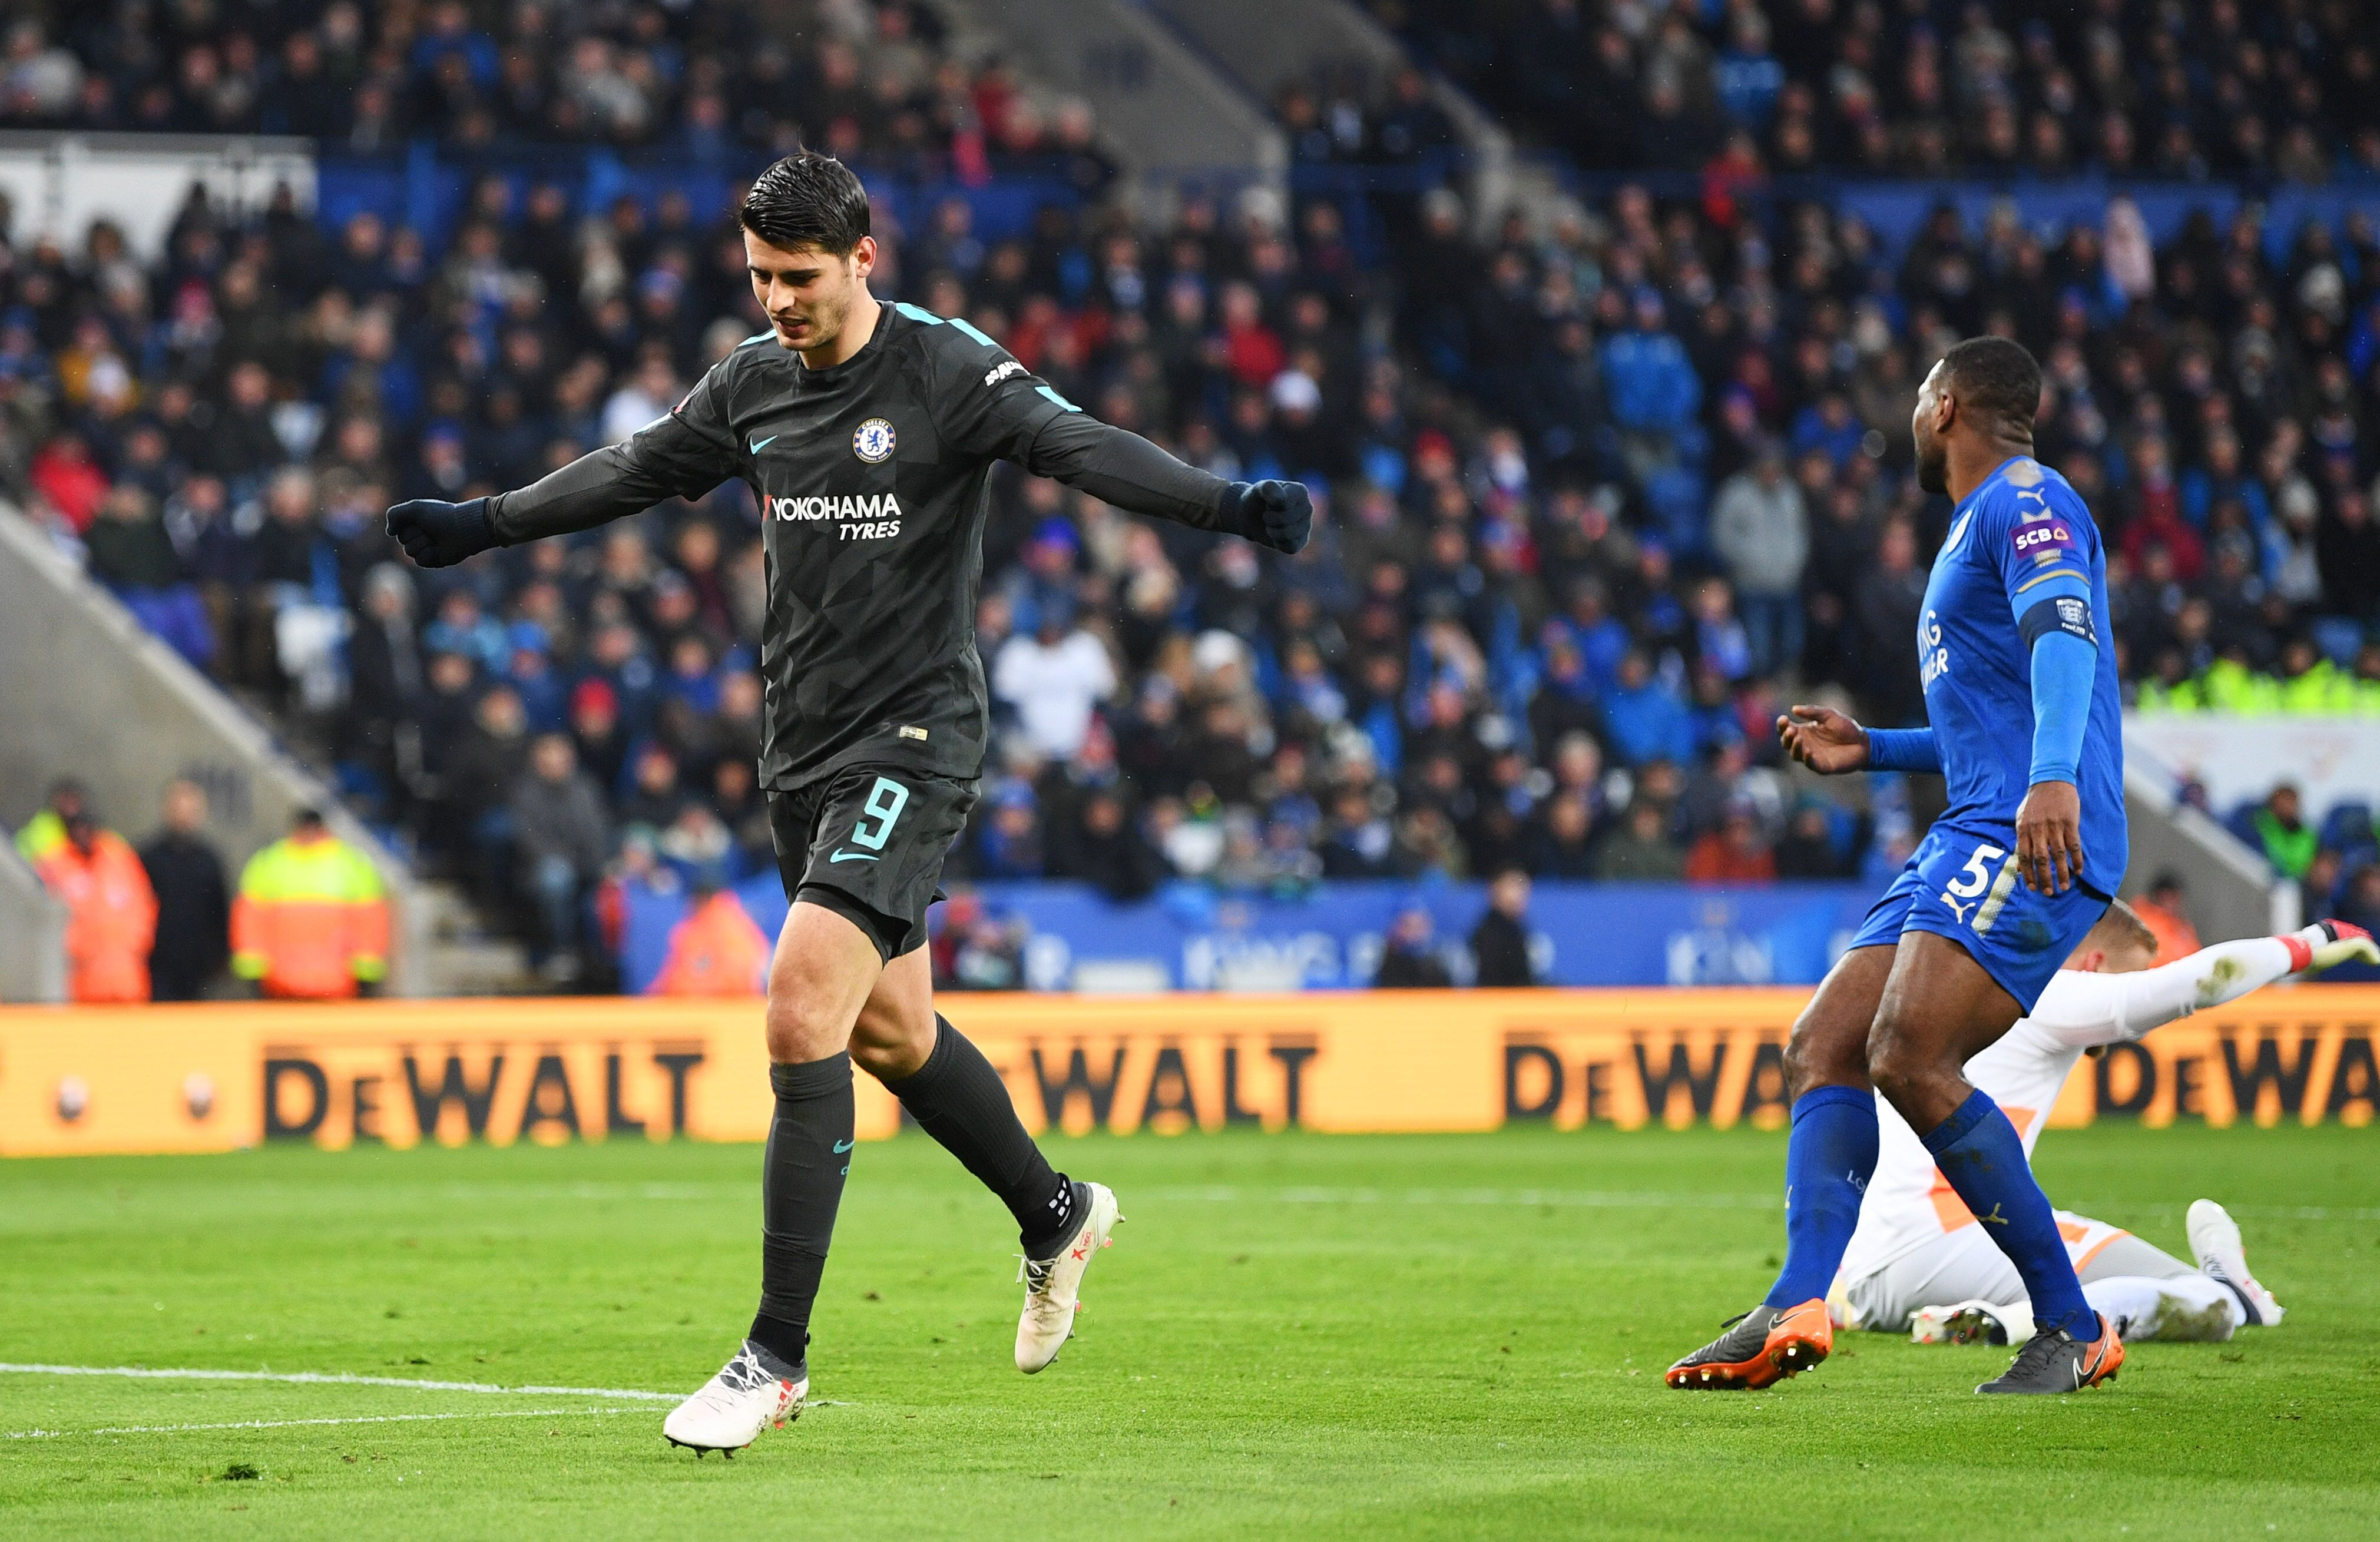 933676592-leicester-city-v-chelsea-the-emirates-fa-cup-quarter-final.jpg